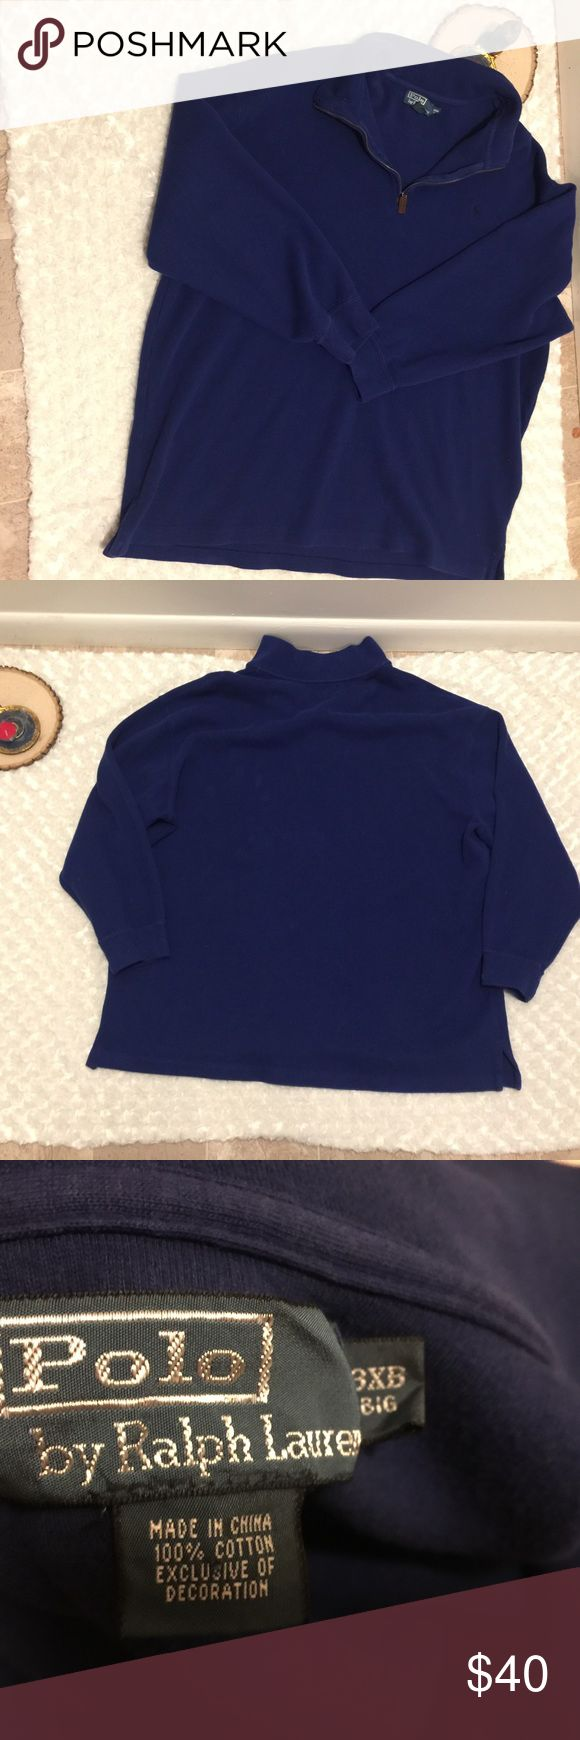 Polo Ralph Lauren Men's Long Sleeve Shirt 3X Long sleeve Polo. Pre-owned, gently used condition with no flaws. Size 3X. Color: royal blue. Polo by Ralph Lauren Shirts Polos